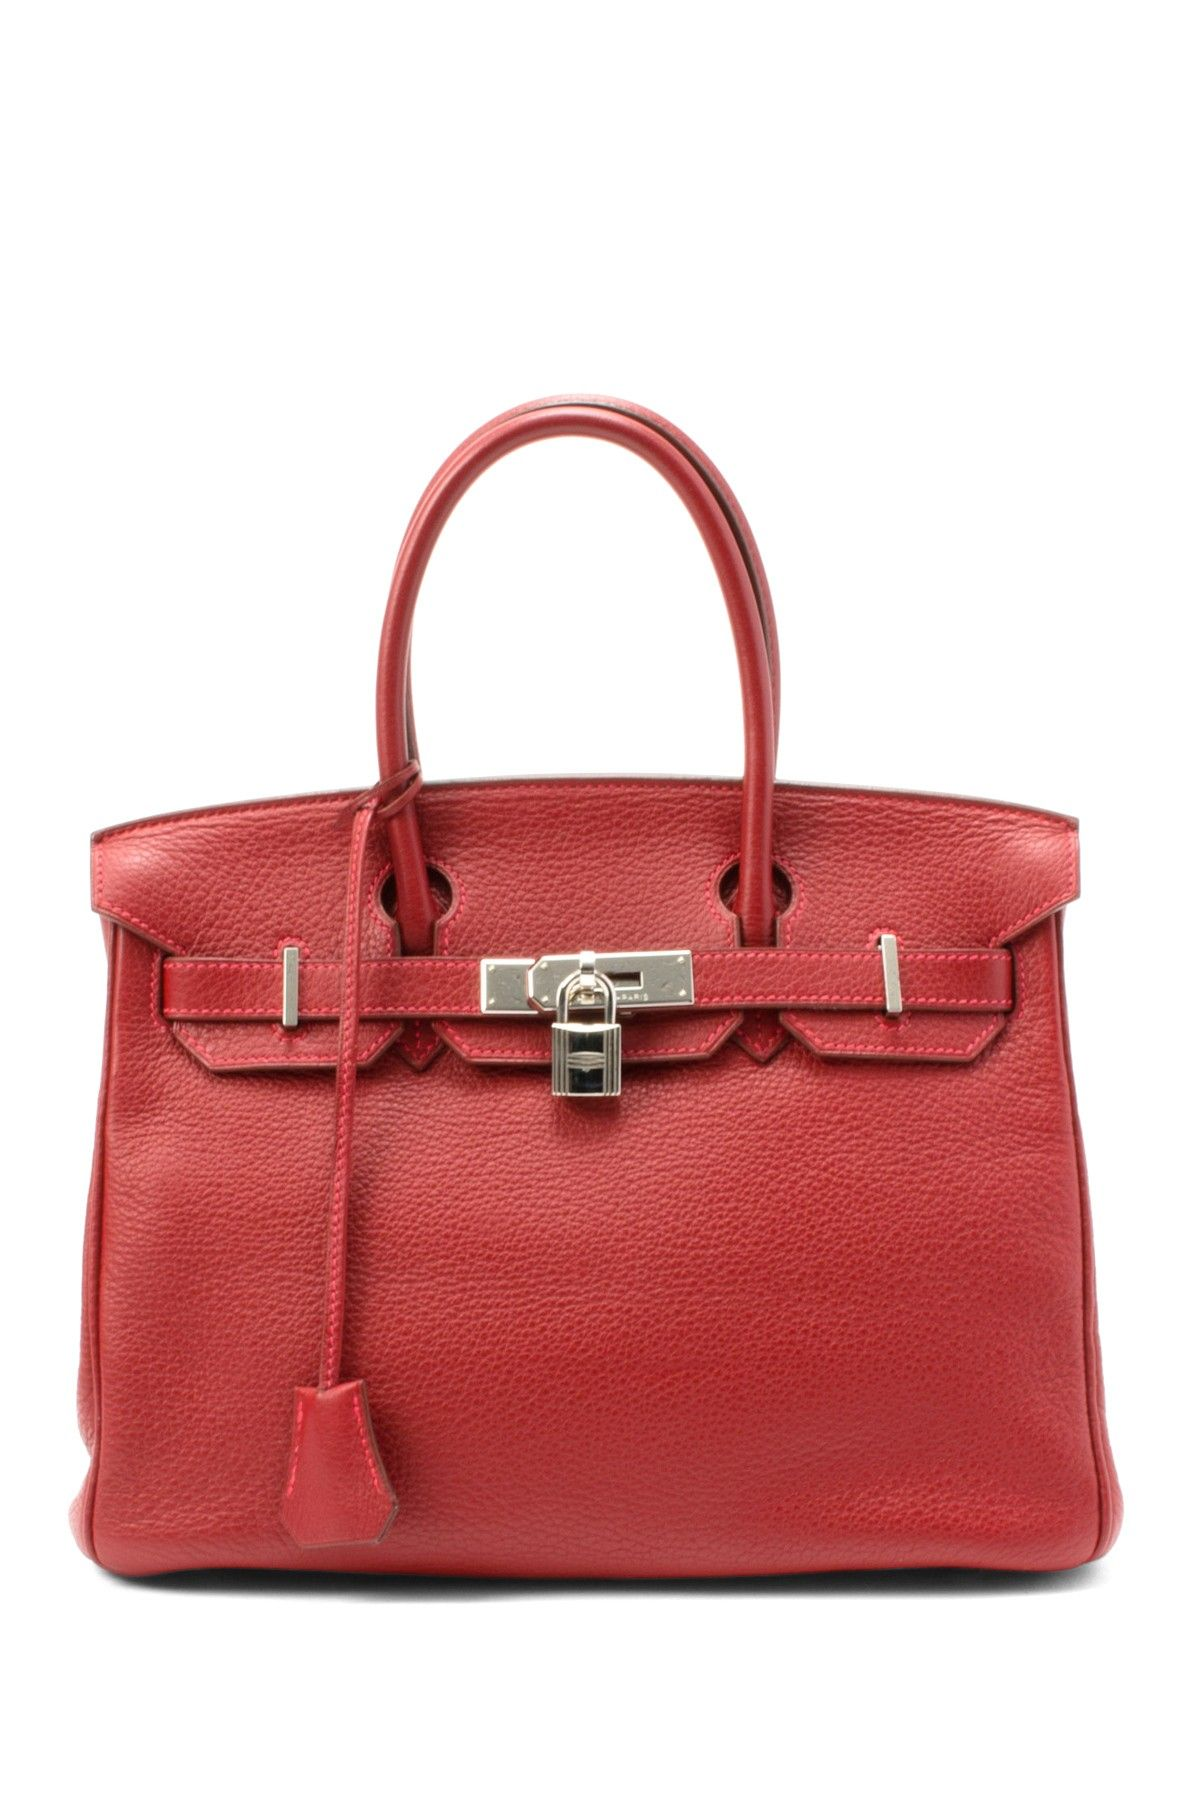 4089207544ba Vintage Hermes Leather Birkin 30 Stamp Handbag I want one ...